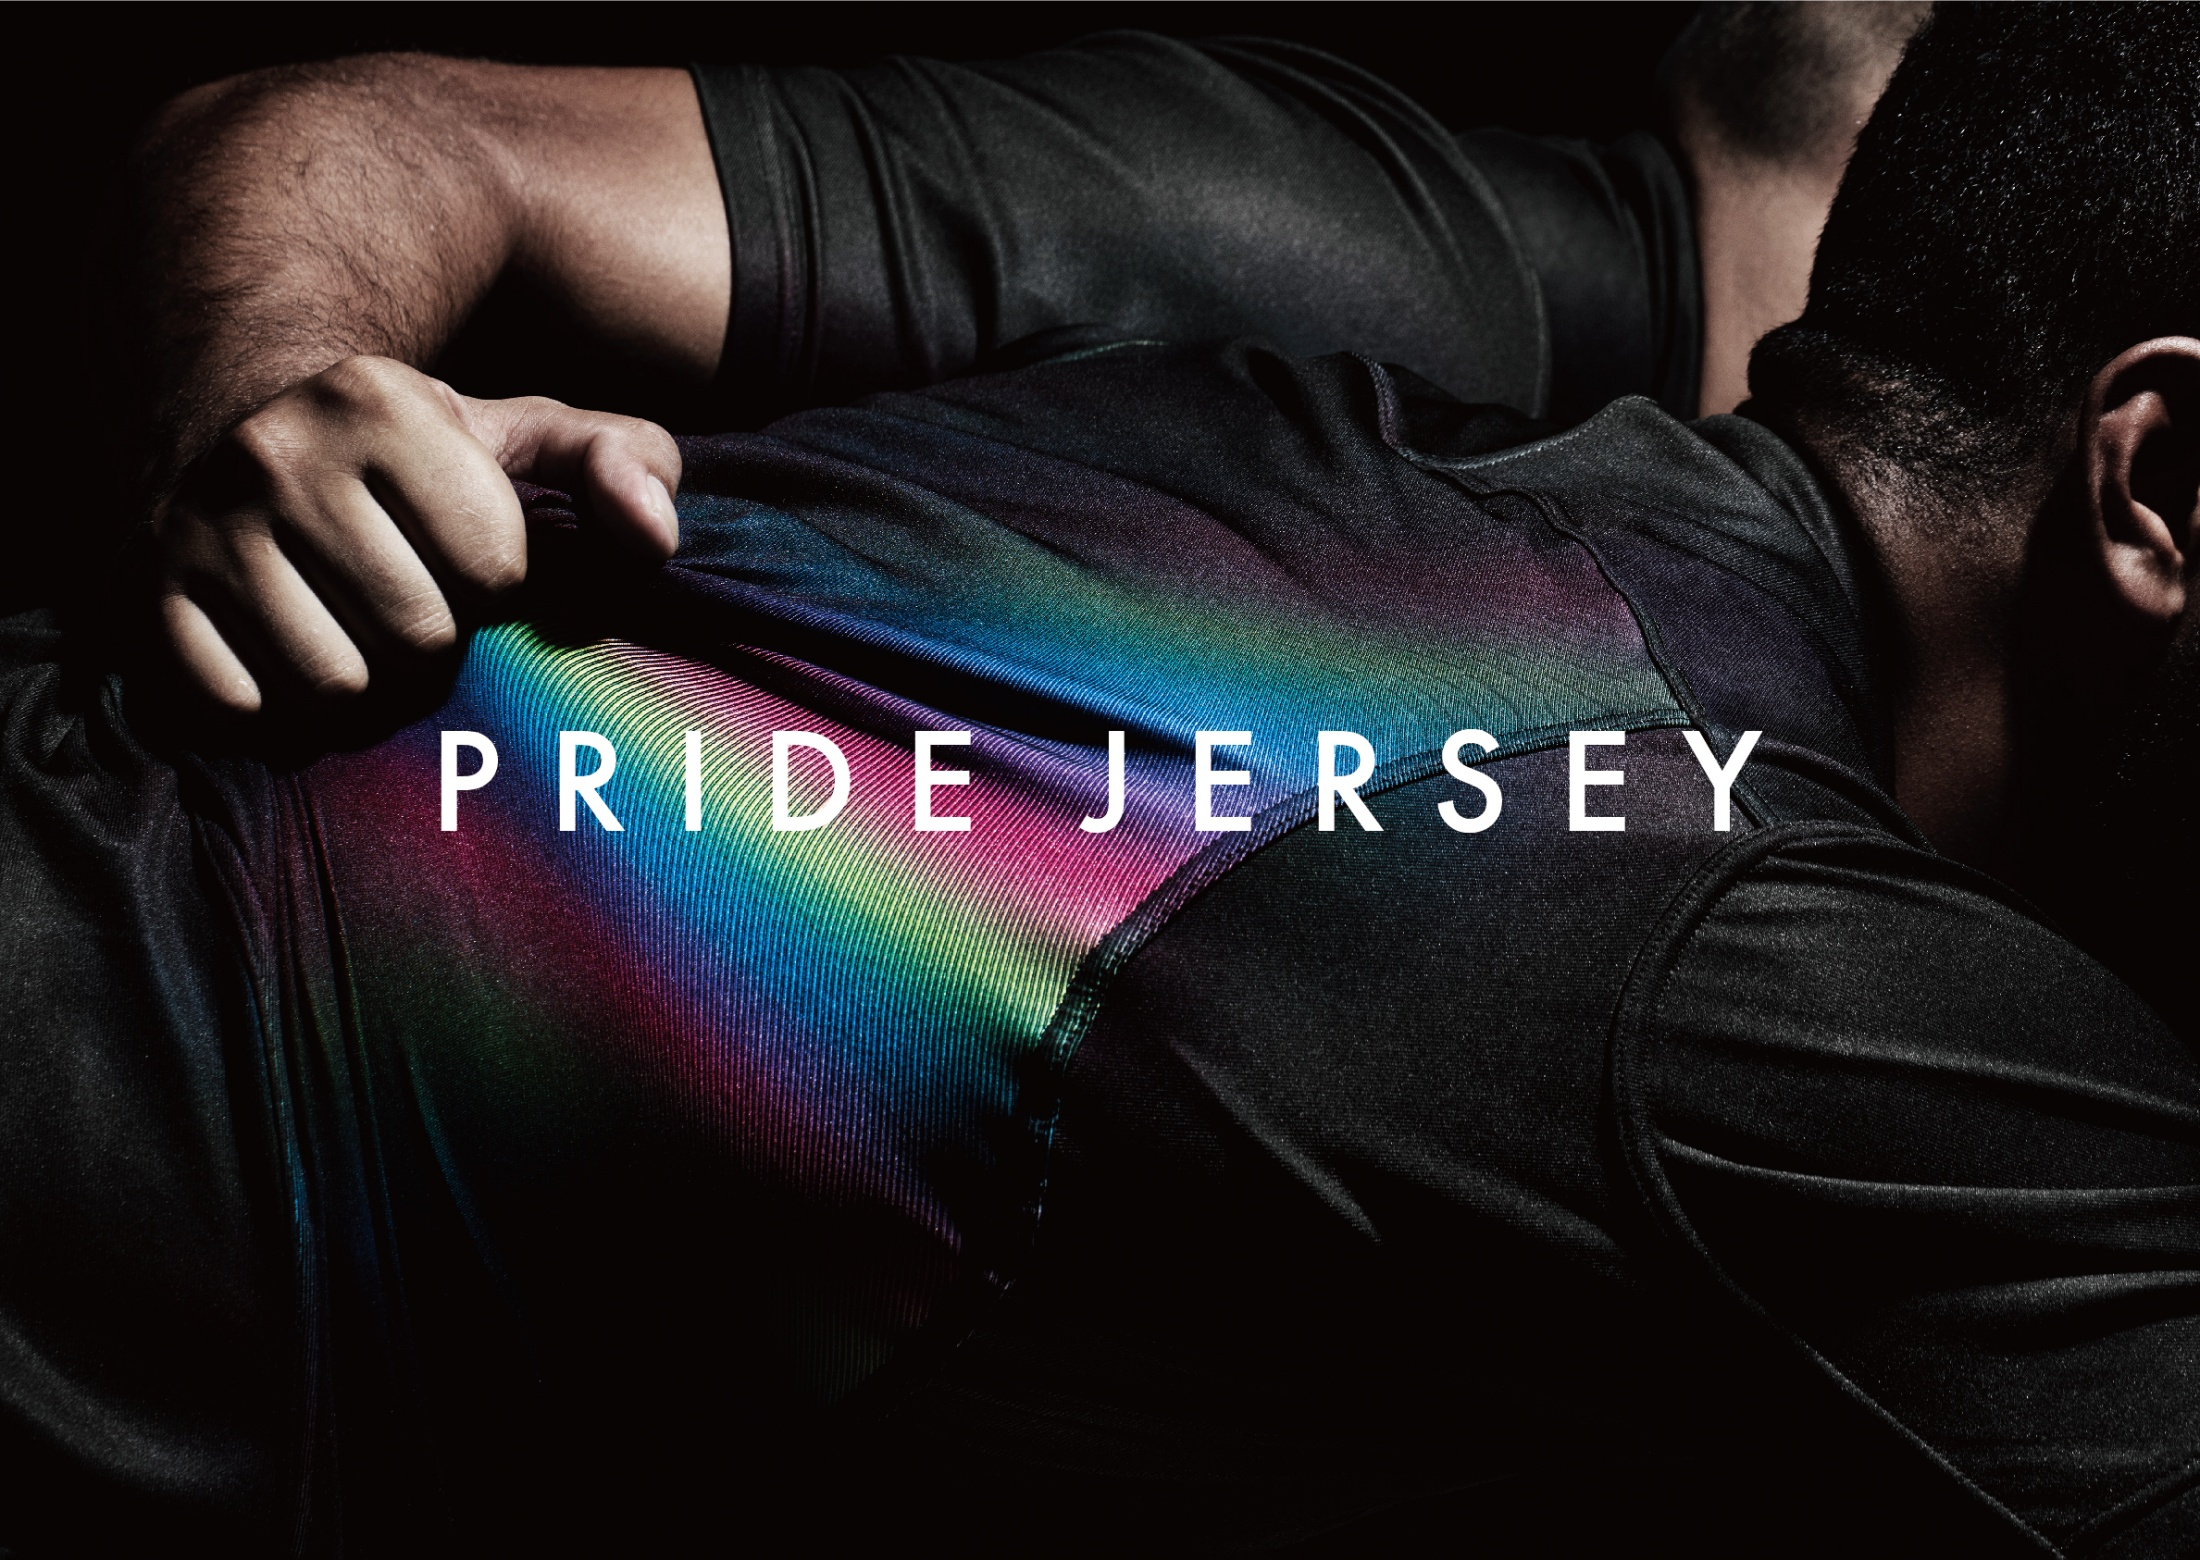 Image Media for PRIDE JERSEY